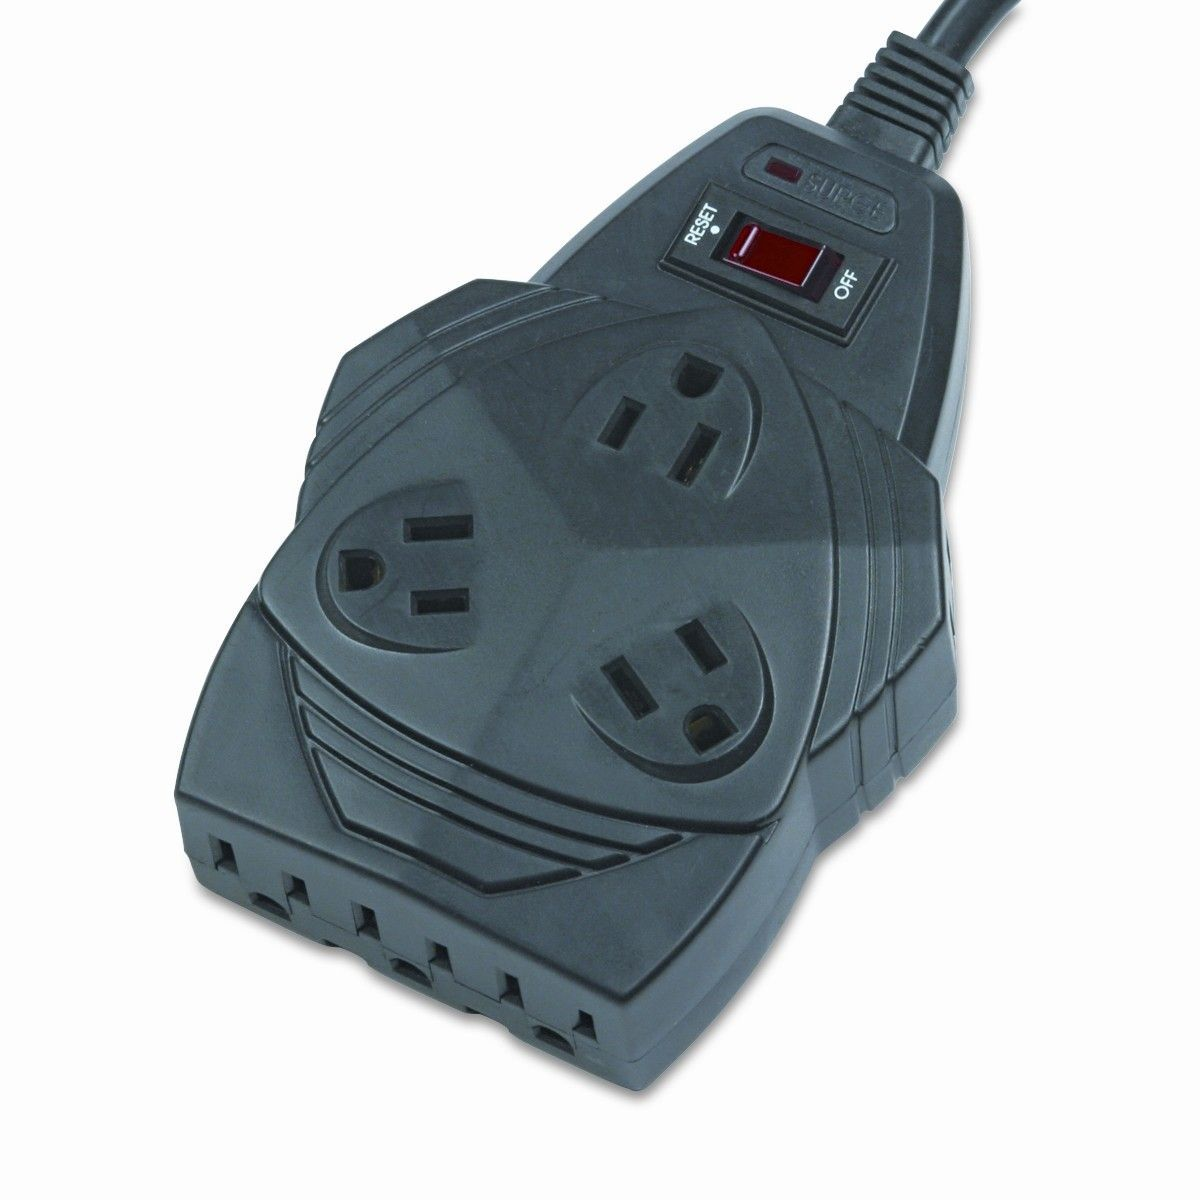 Mighty 8 Surge Protector, 8 Outlets, 6Ft Cord